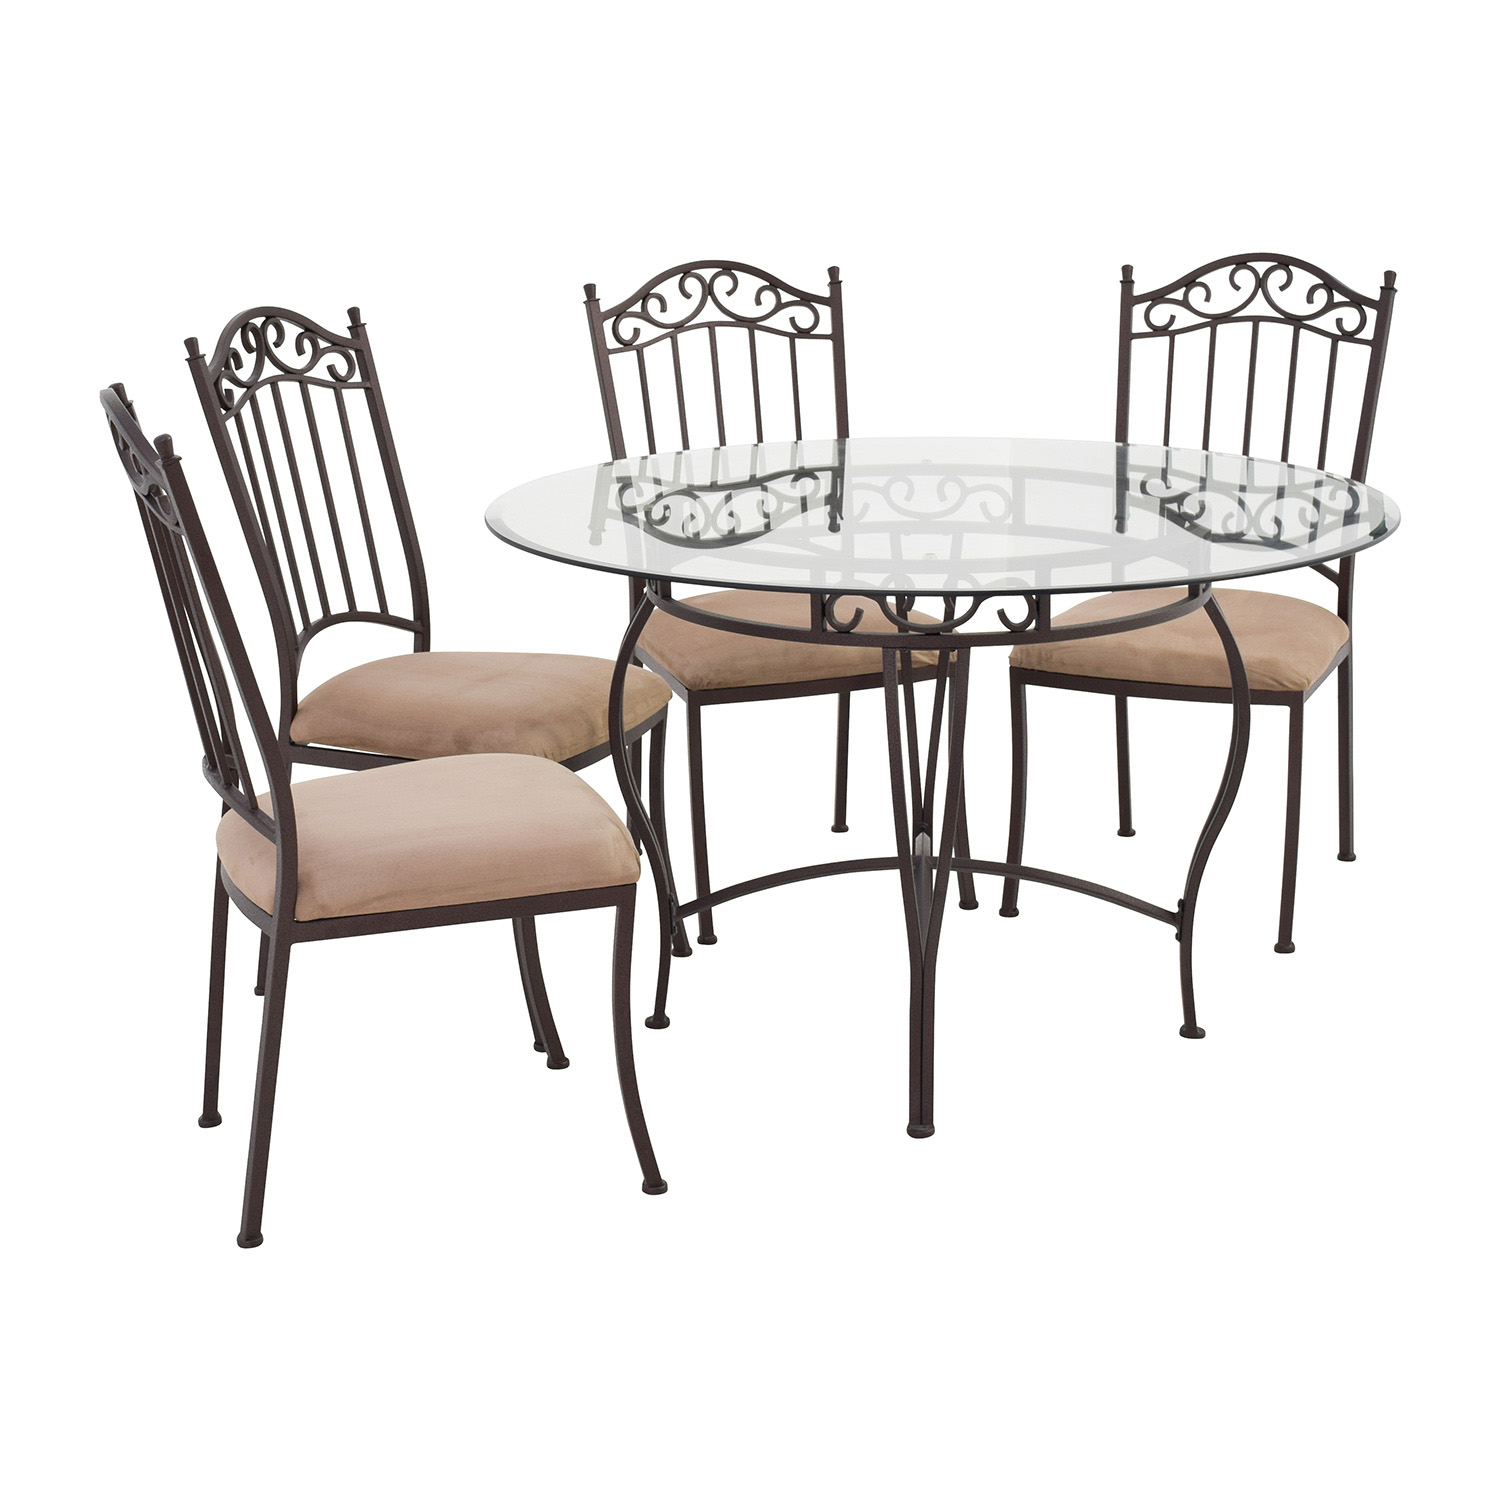 Glass Tables And Chairs 72 Off Wrought Iron Round Glass Table And Chairs Tables